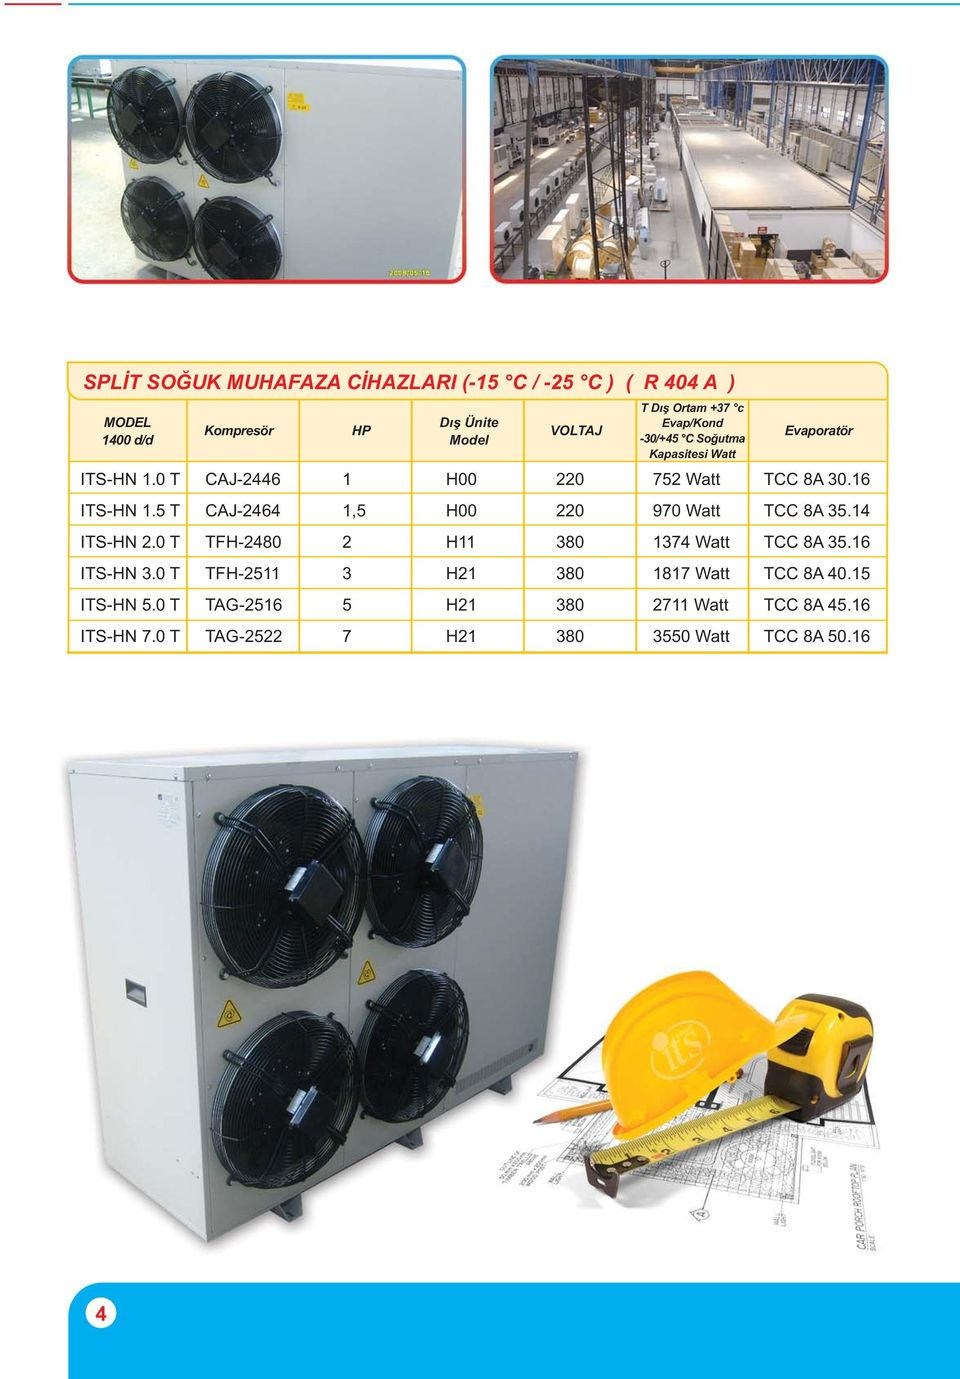 5 T CAJ-2464 1,5 H00 220 970 Watt TCC 8A 35.14 ITS-HN 2.0 T TFH-2480 2 H11 380 1374 Watt TCC 8A 35.16 ITS-HN 3.